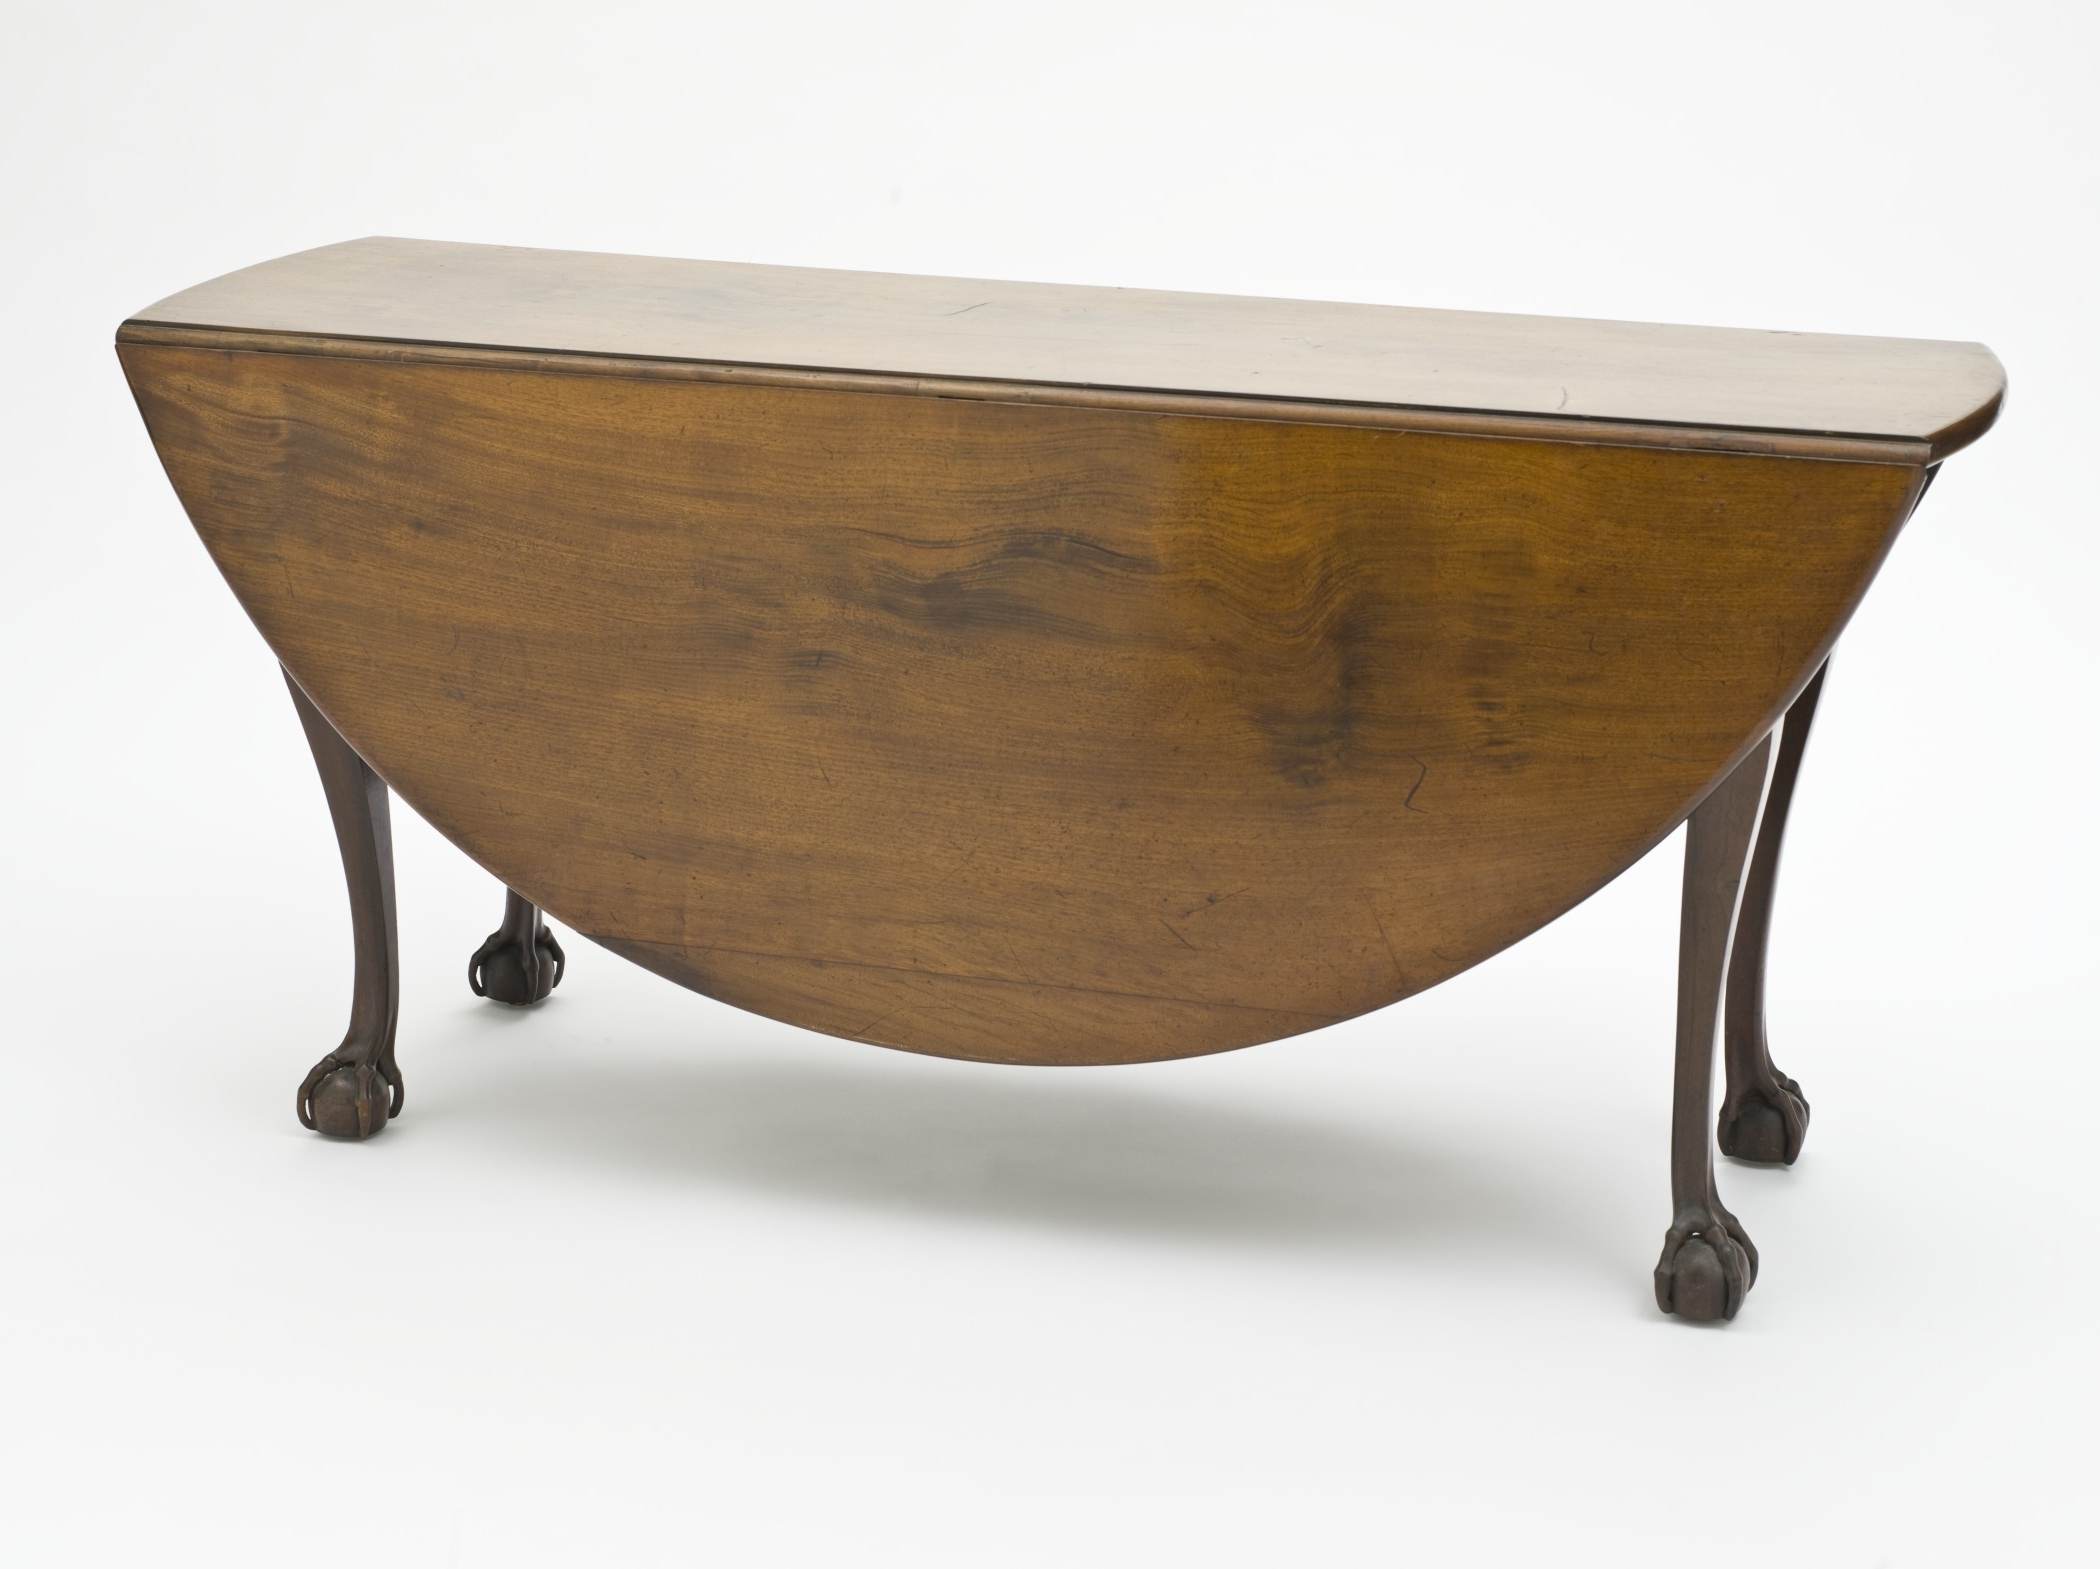 Most Recent Oval Folding Dining Tables Throughout Drop Leaf Table – Wikipedia (View 11 of 25)